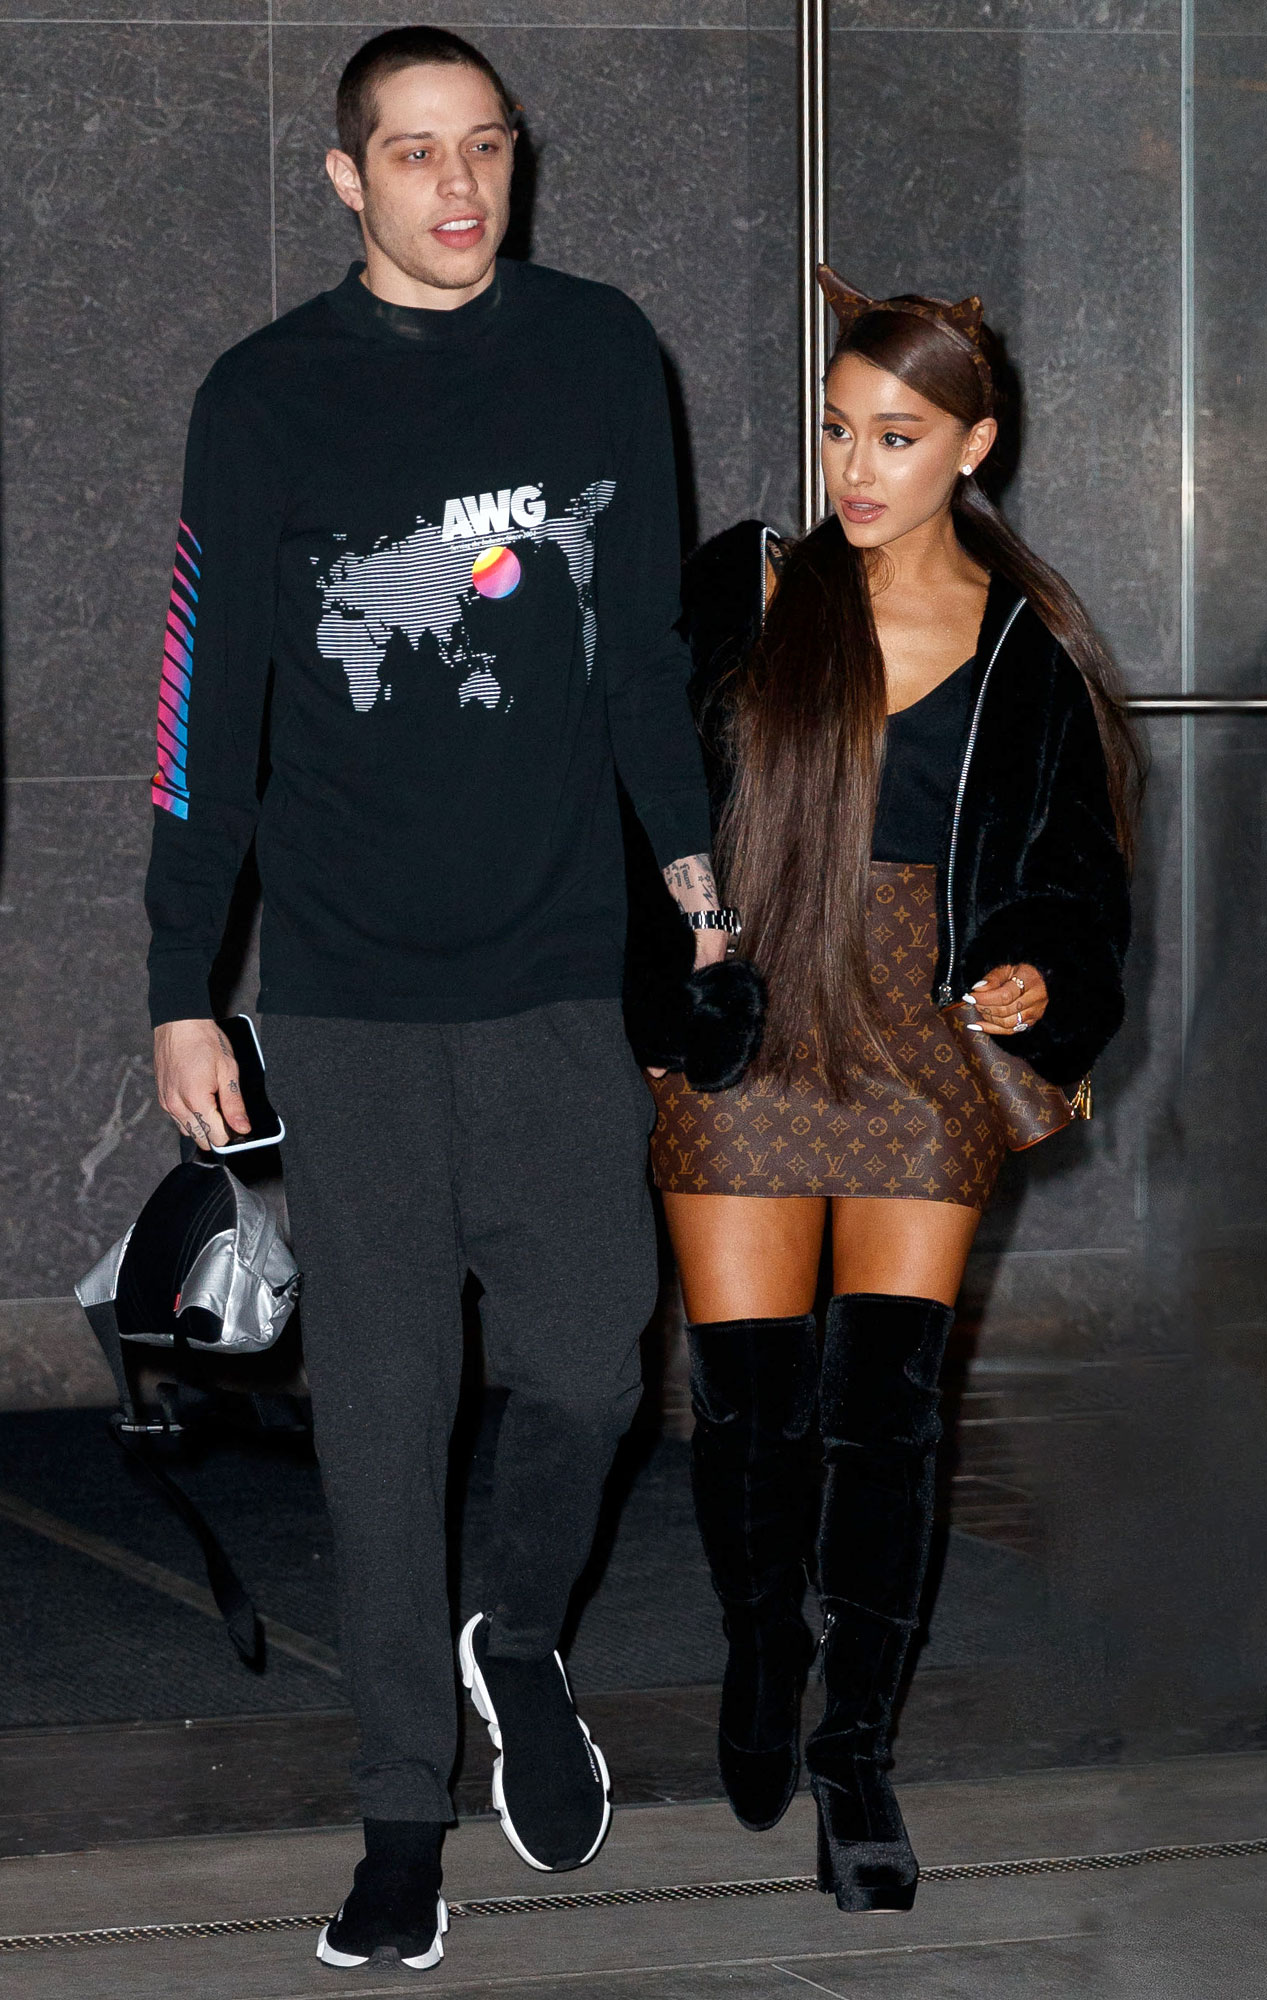 Ariana Grande wears a Louis Vuitton leather skirt when heading out for dinner with Pete Davidson in New York